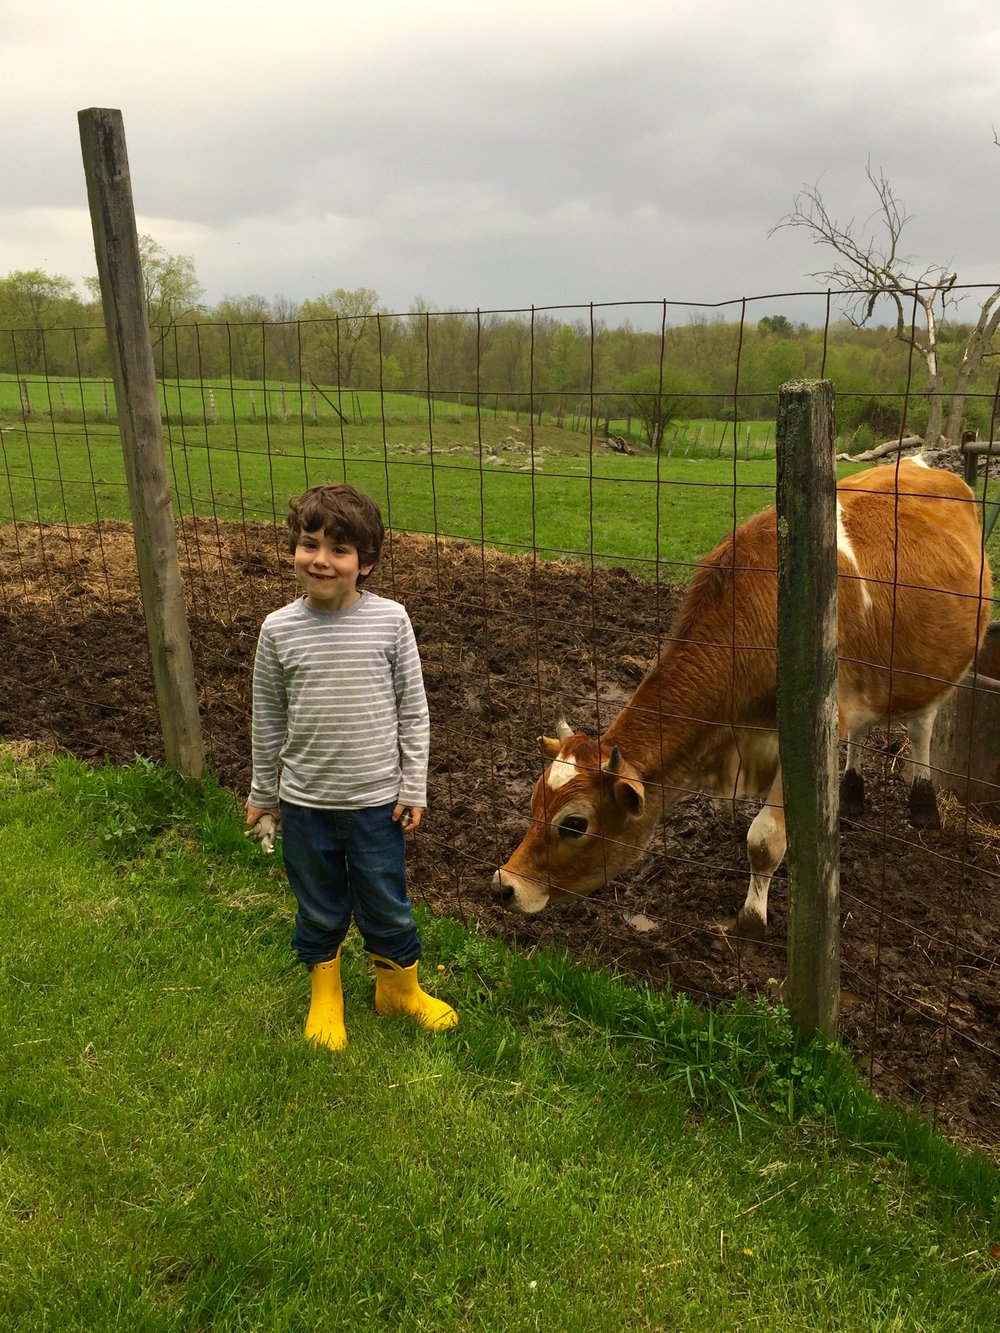 Archer introduces himself to the neighbor's cow, who lives behind the outdoor seating area.